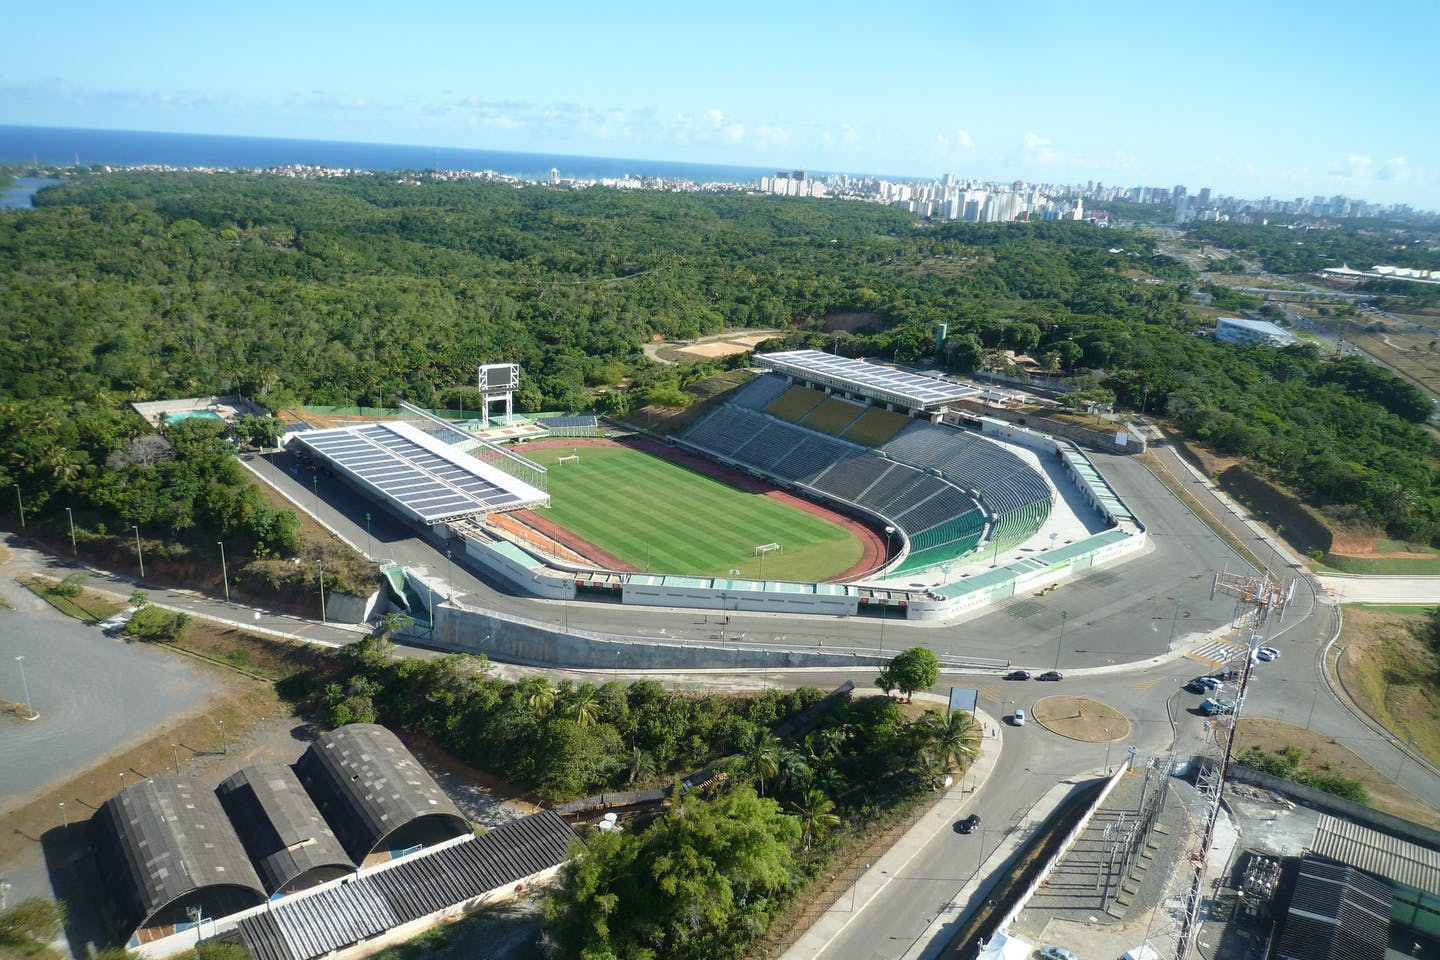 Estádio de Pituacu in the Brazilian city of Salvador de Bahia